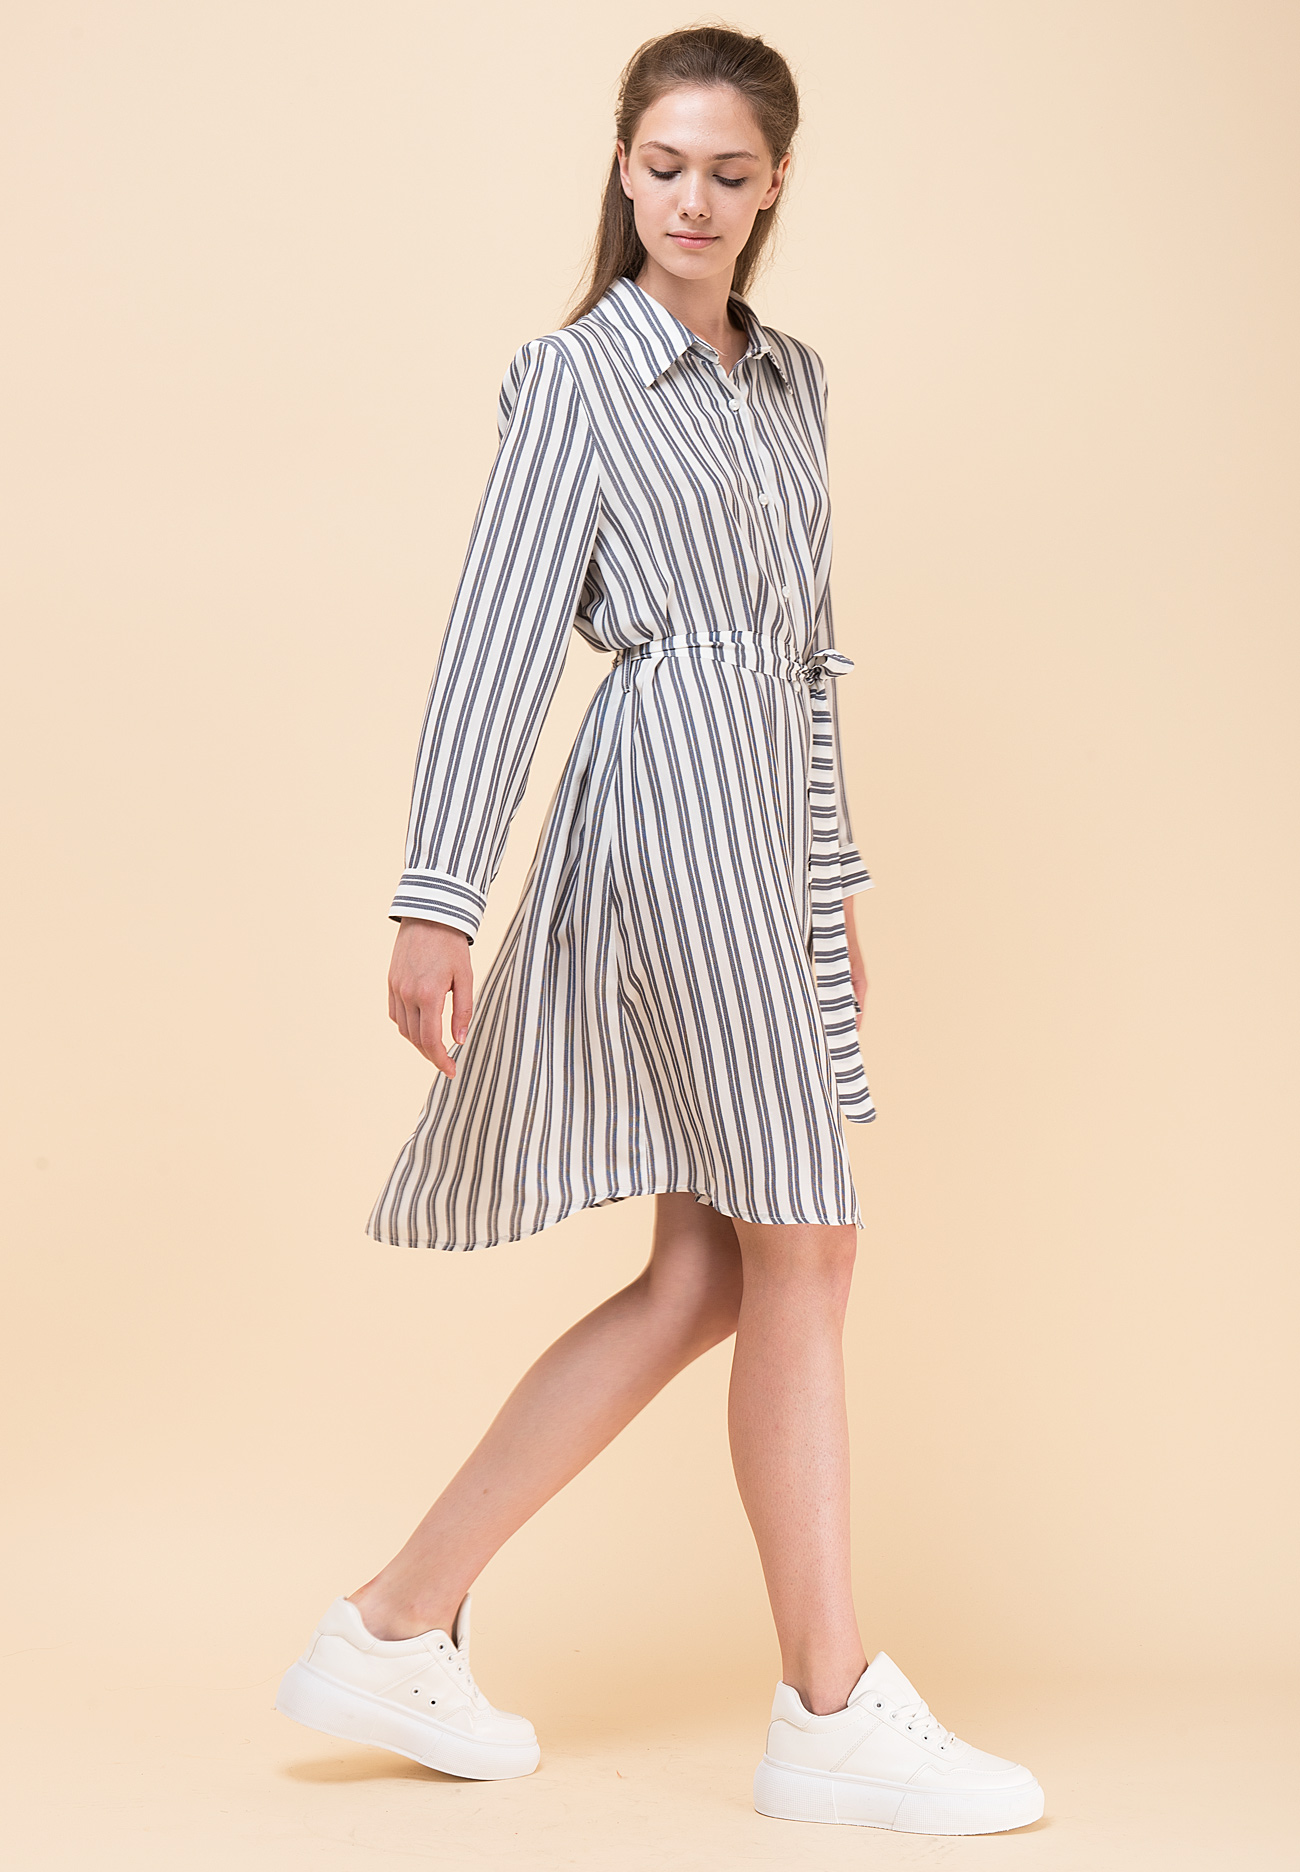 8066a4718a5 Mini shirt dress with collar - ZIC ZAC